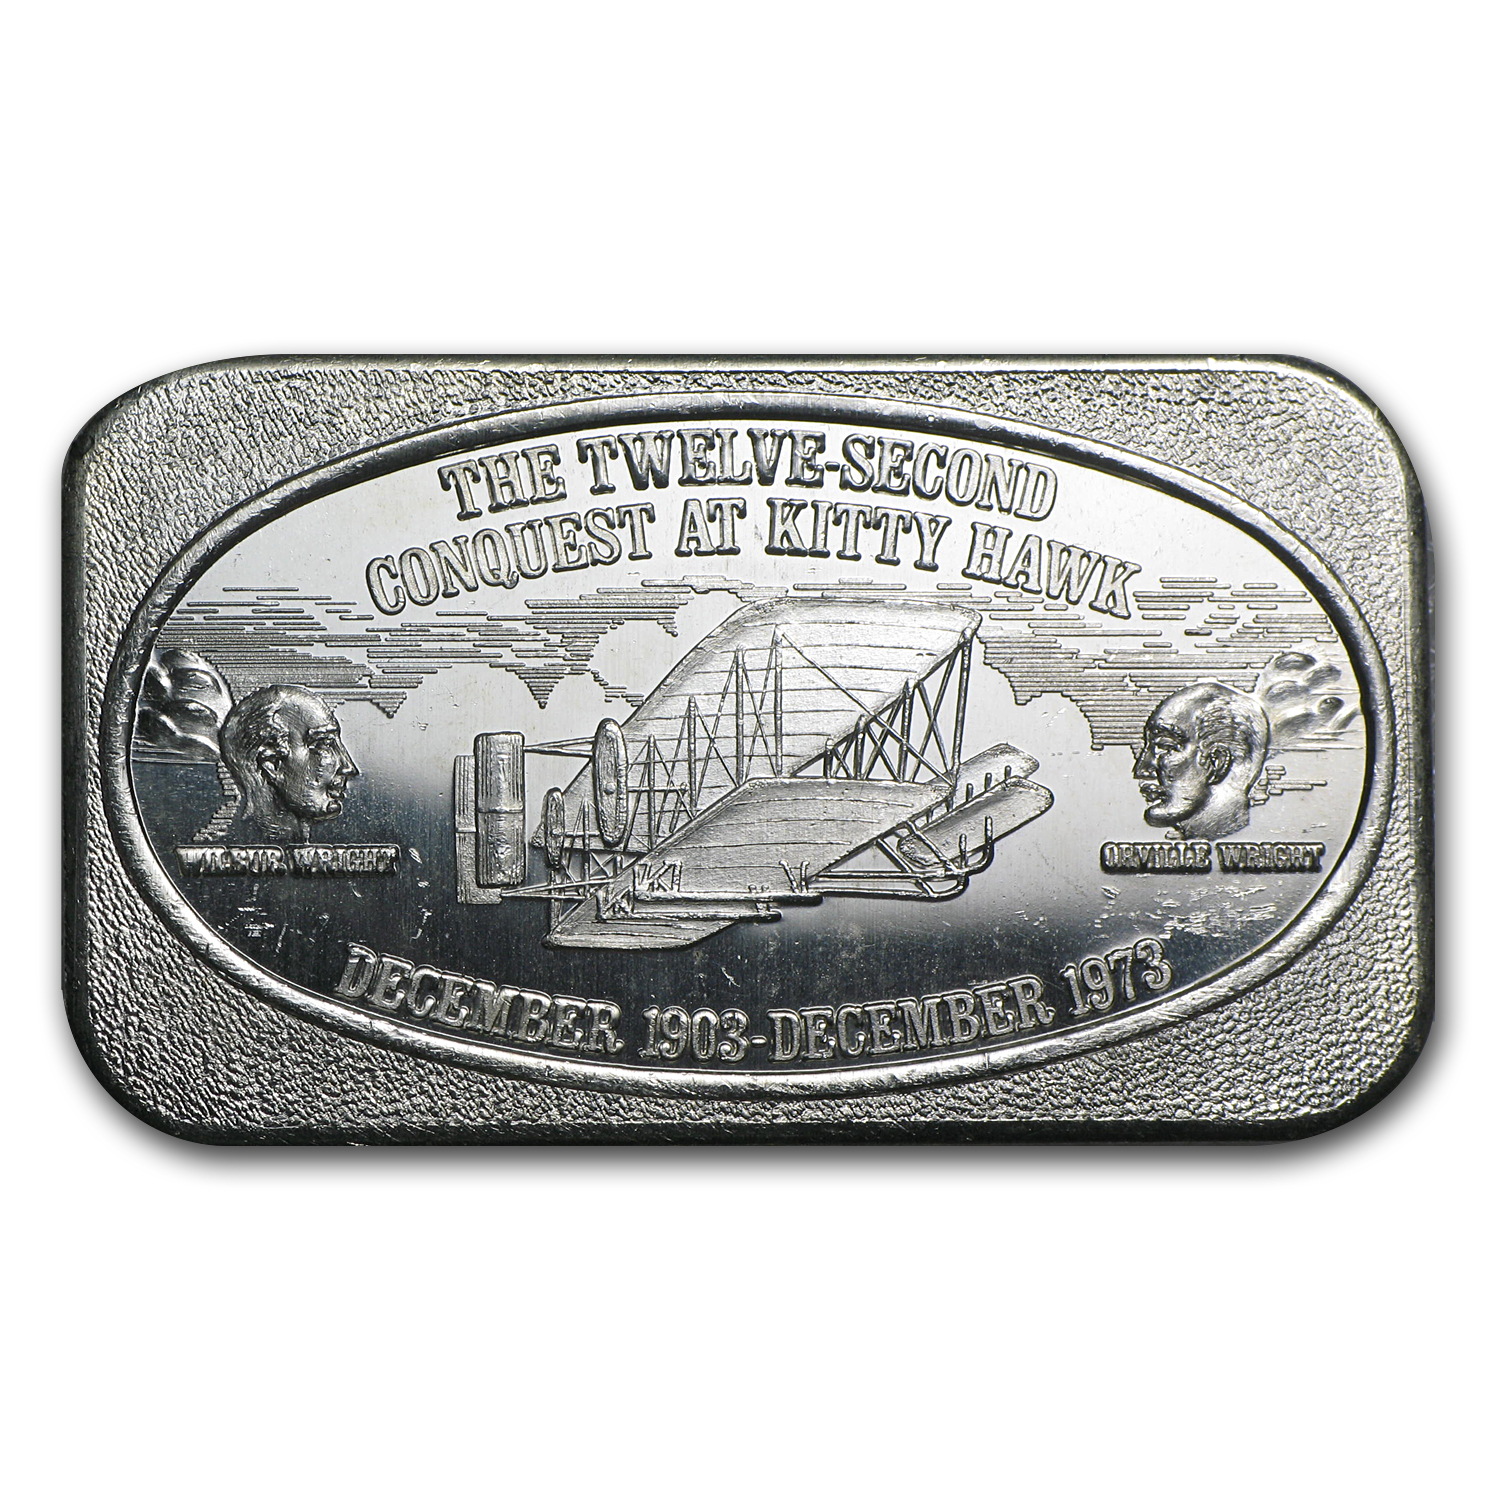 1 oz Silver Bar - Conquest at Kitty Hawk